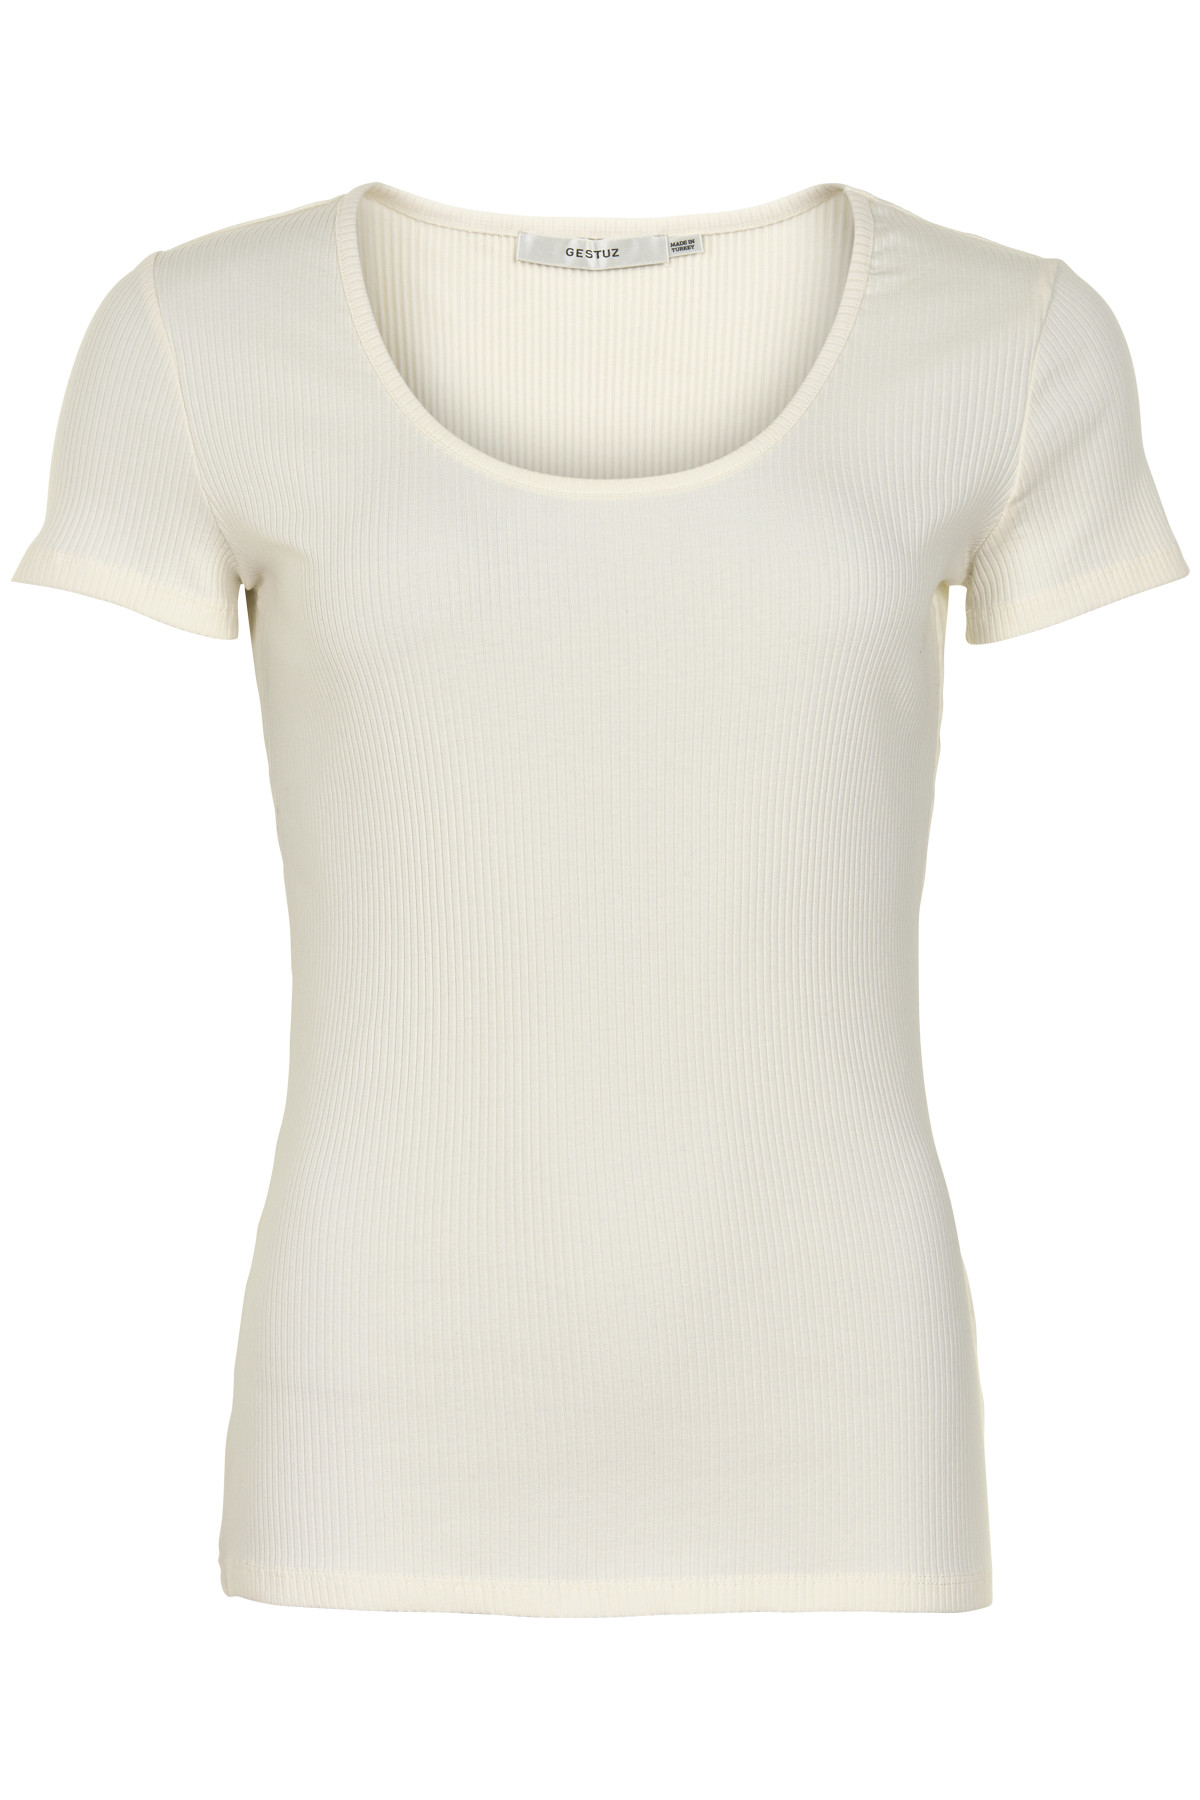 Image of   GESTUZ ROLLA TEE B (Bright White 90014, L)